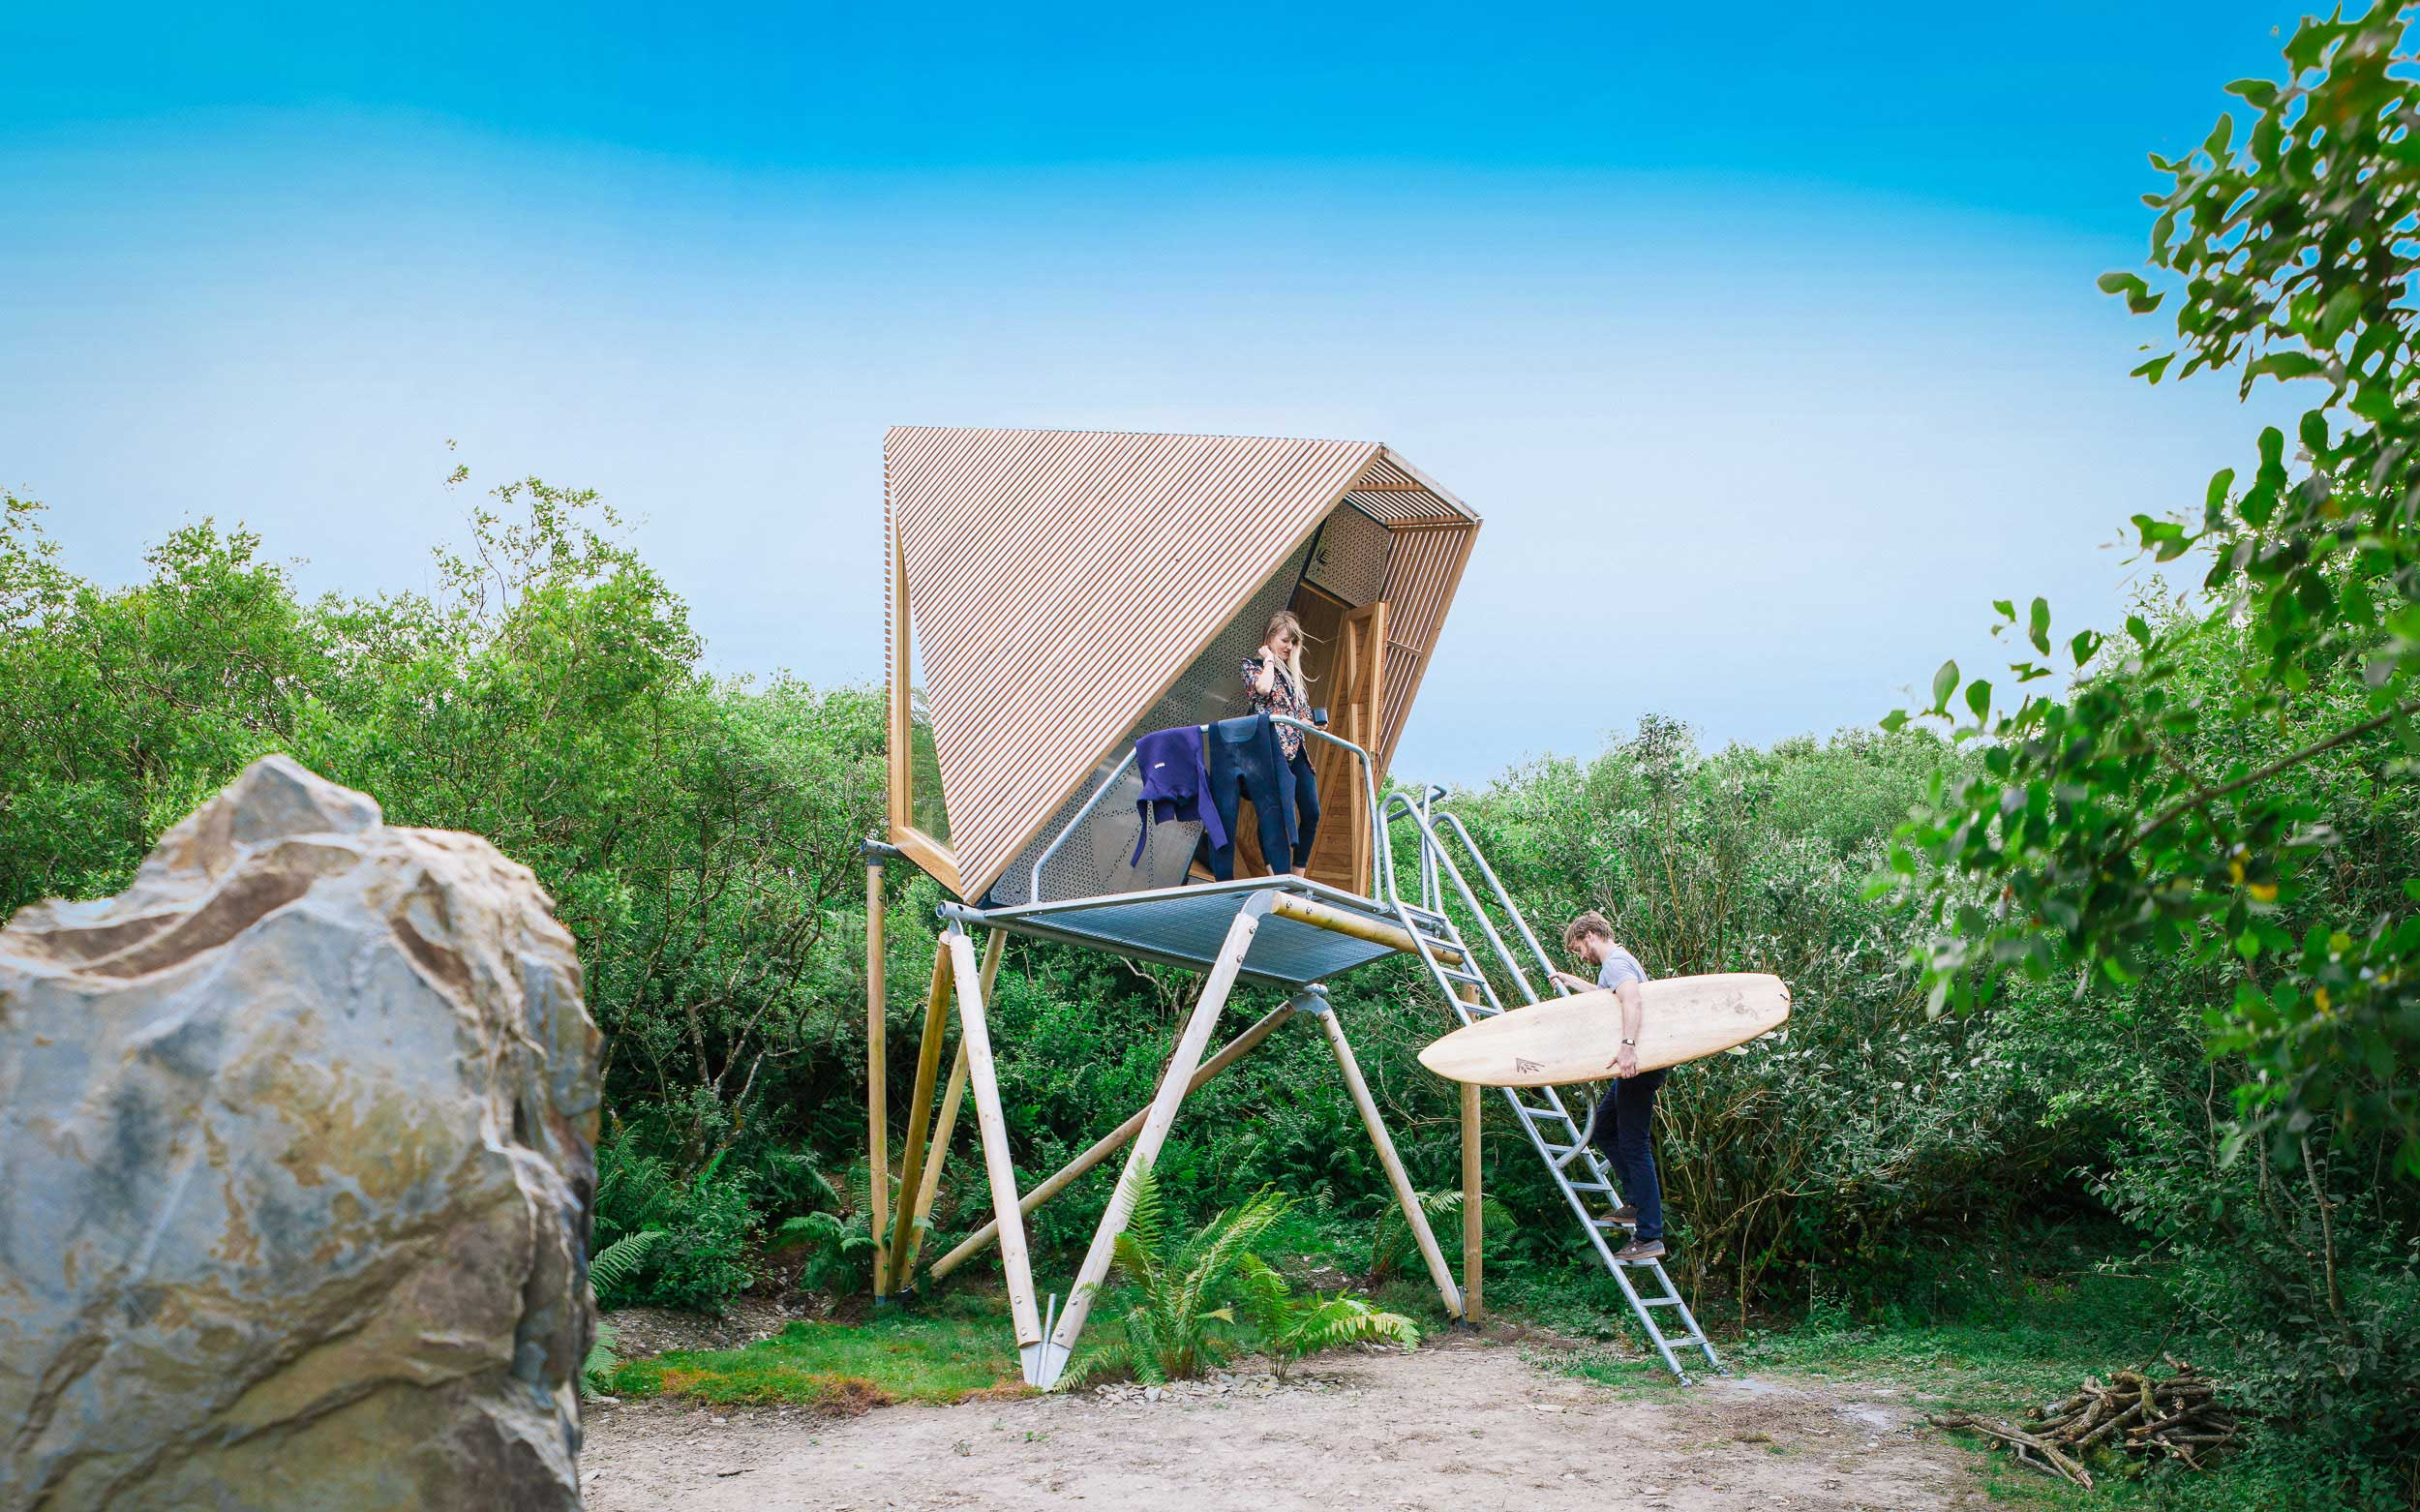 kudhva-off-grid-cabins-cornwall-1